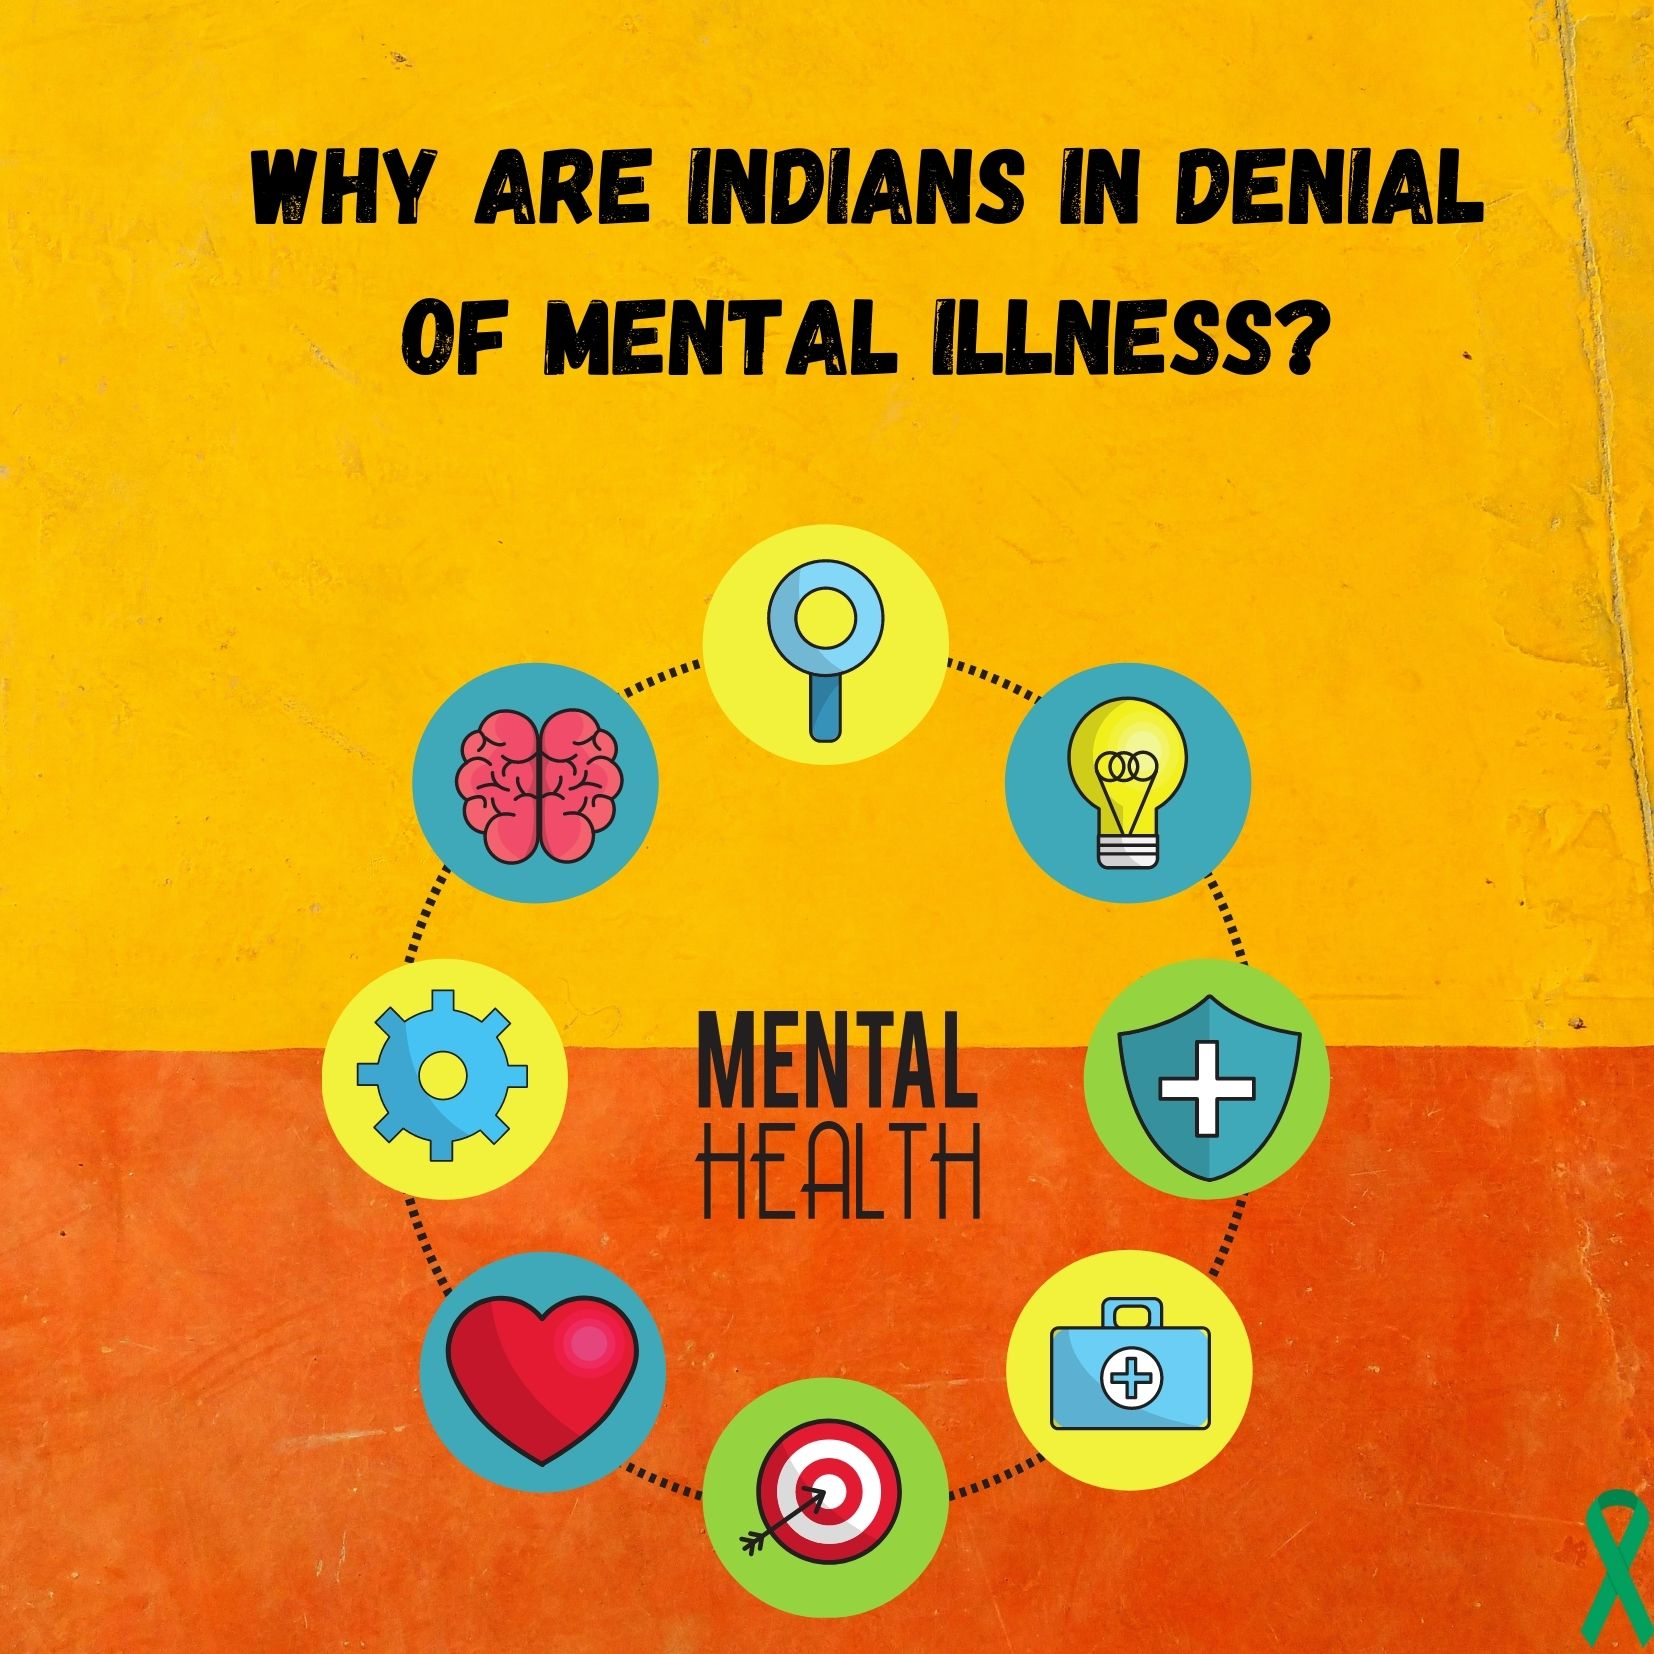 WHY ARE INDIANS IN DENIAL OF MENTAL ILLNESS?